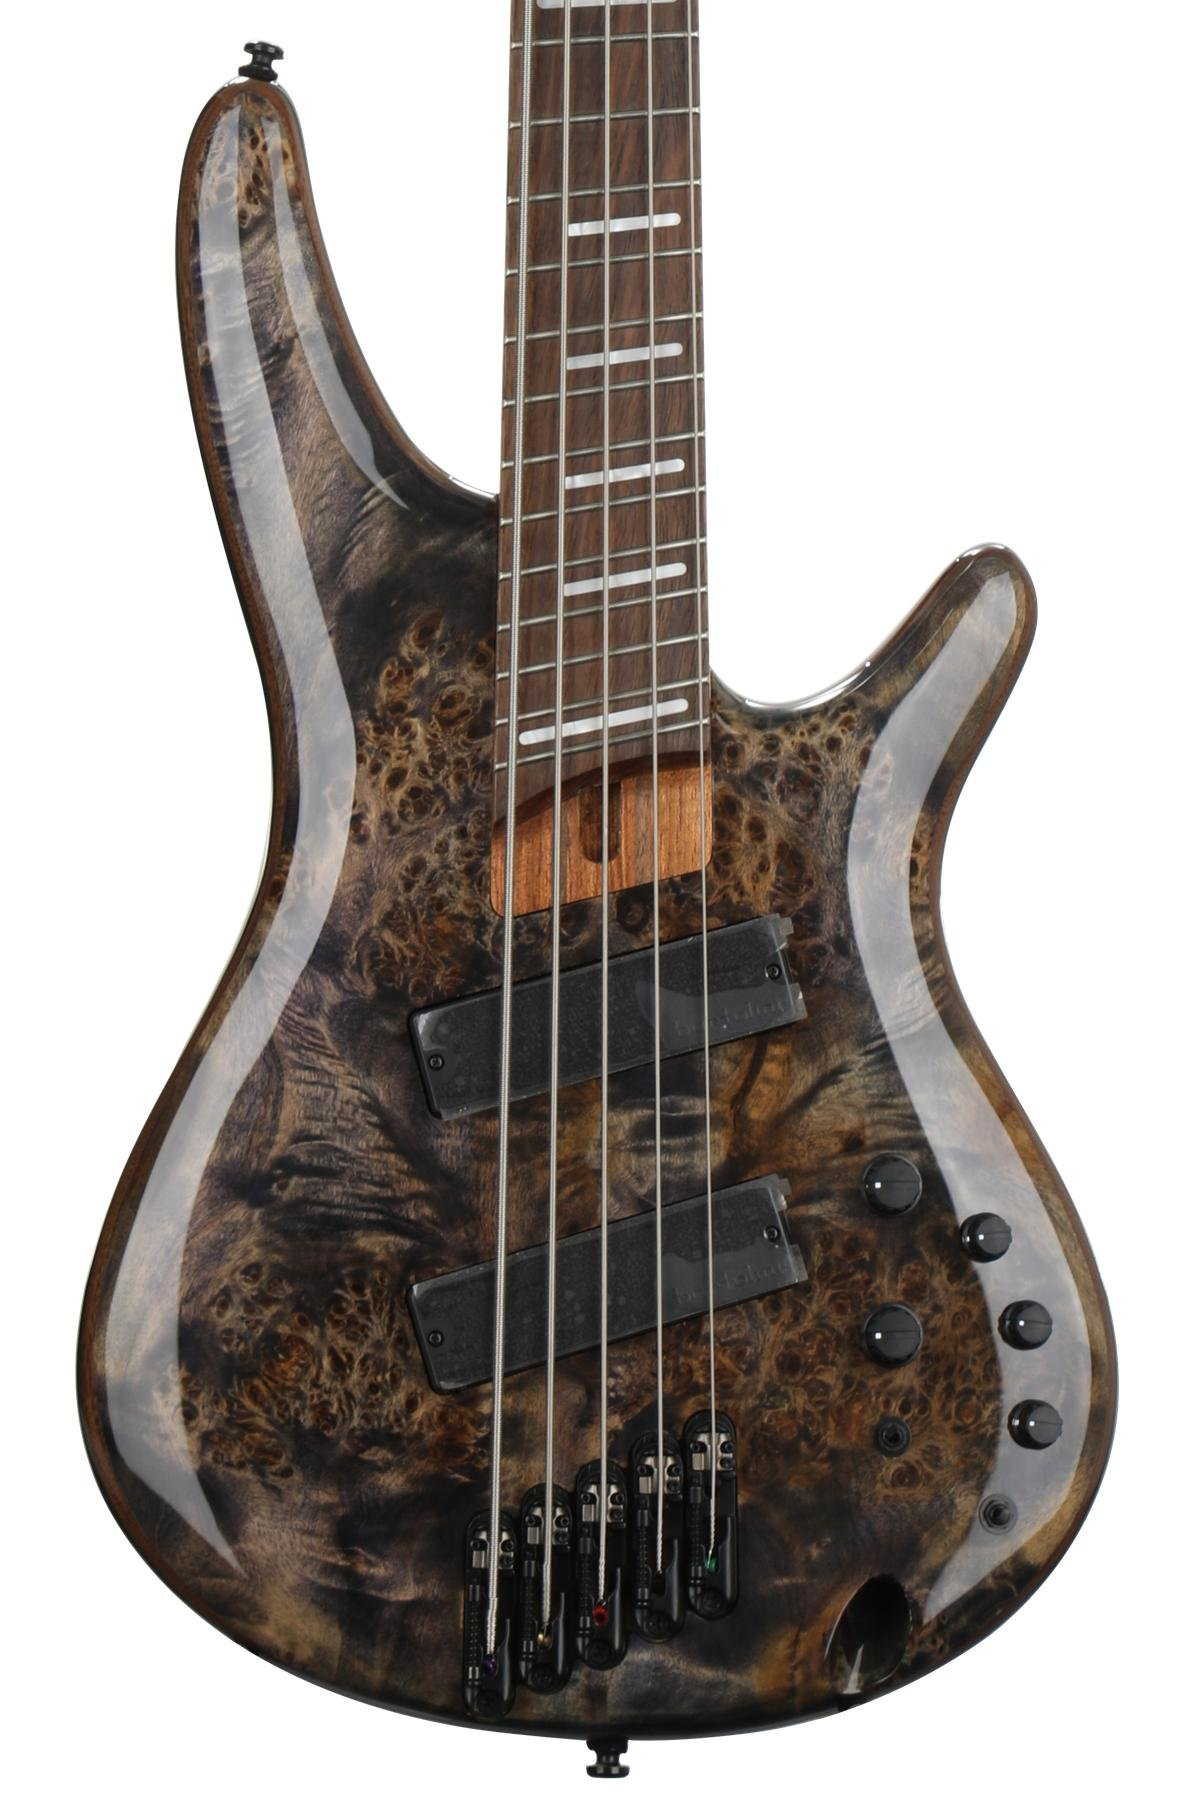 Beautiful Dimarzio Wiring Big Telecaster 5 Way Switch Wiring Diagram Shaped Viper Remote Start Wiring Two Humbuckers 5 Way Switch Youthful Bulldog Car Wiring Diagrams BlueFree Tsb Ibanez 5 String Bass Guitars | Sweetwater